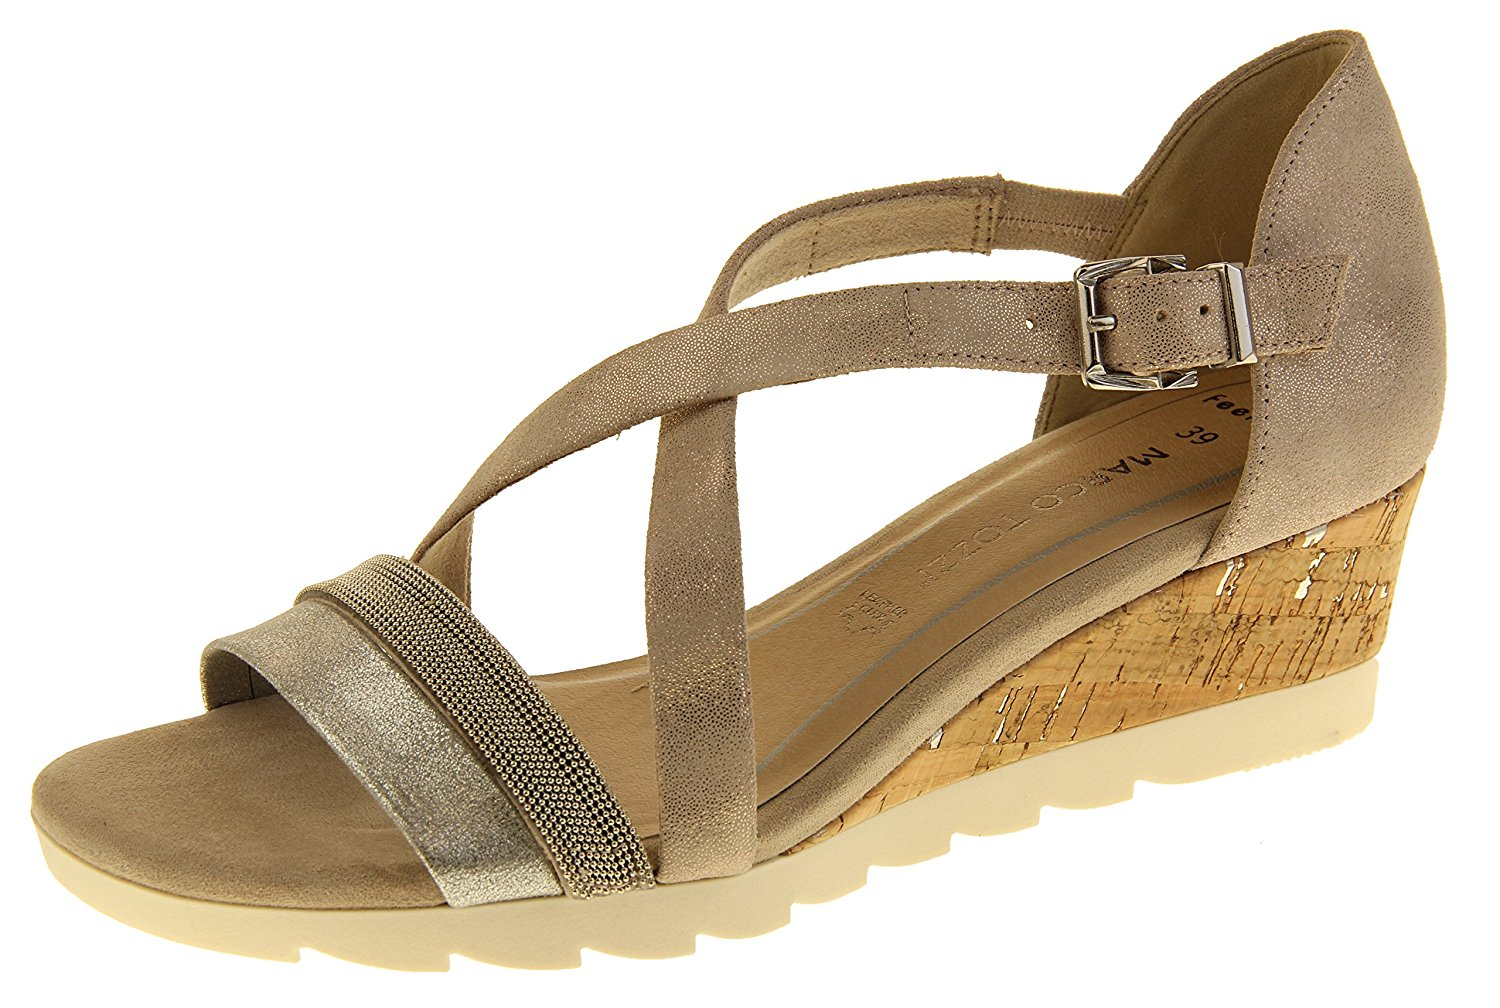 f3bcfcd0dc51 Get Quotations · Marco Tozzi Womens 28716 Leather Wedge Sandals